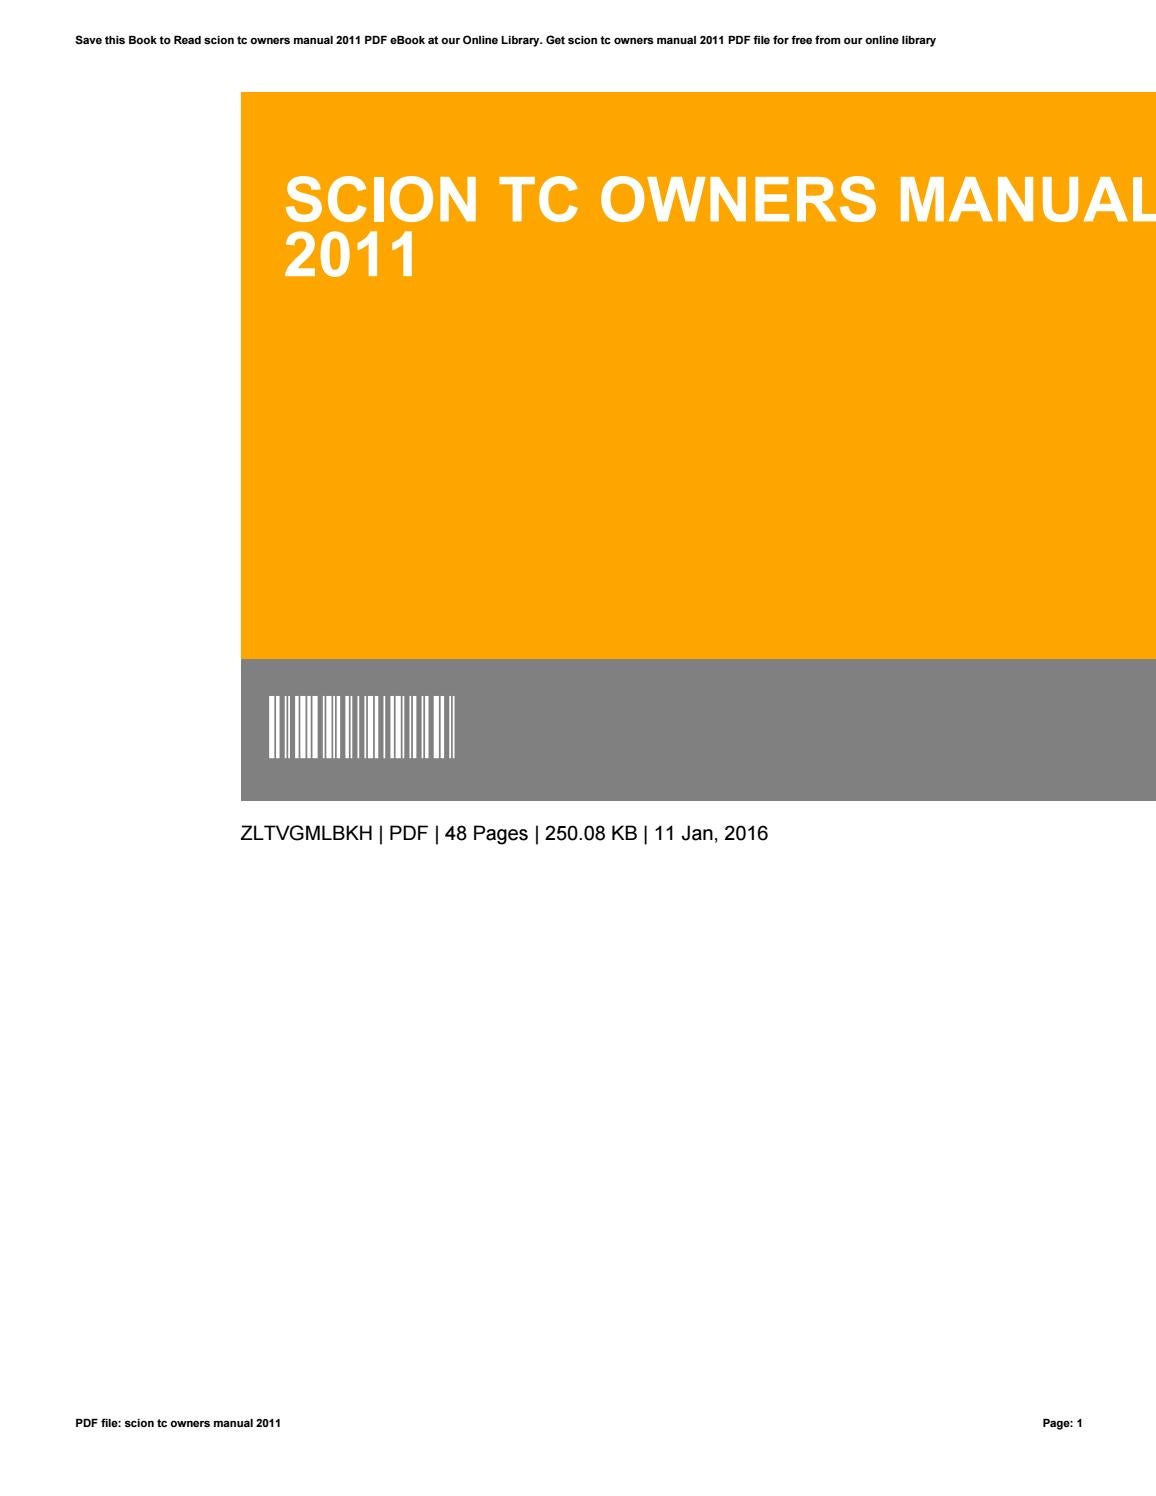 owners manual 2010 scion xd